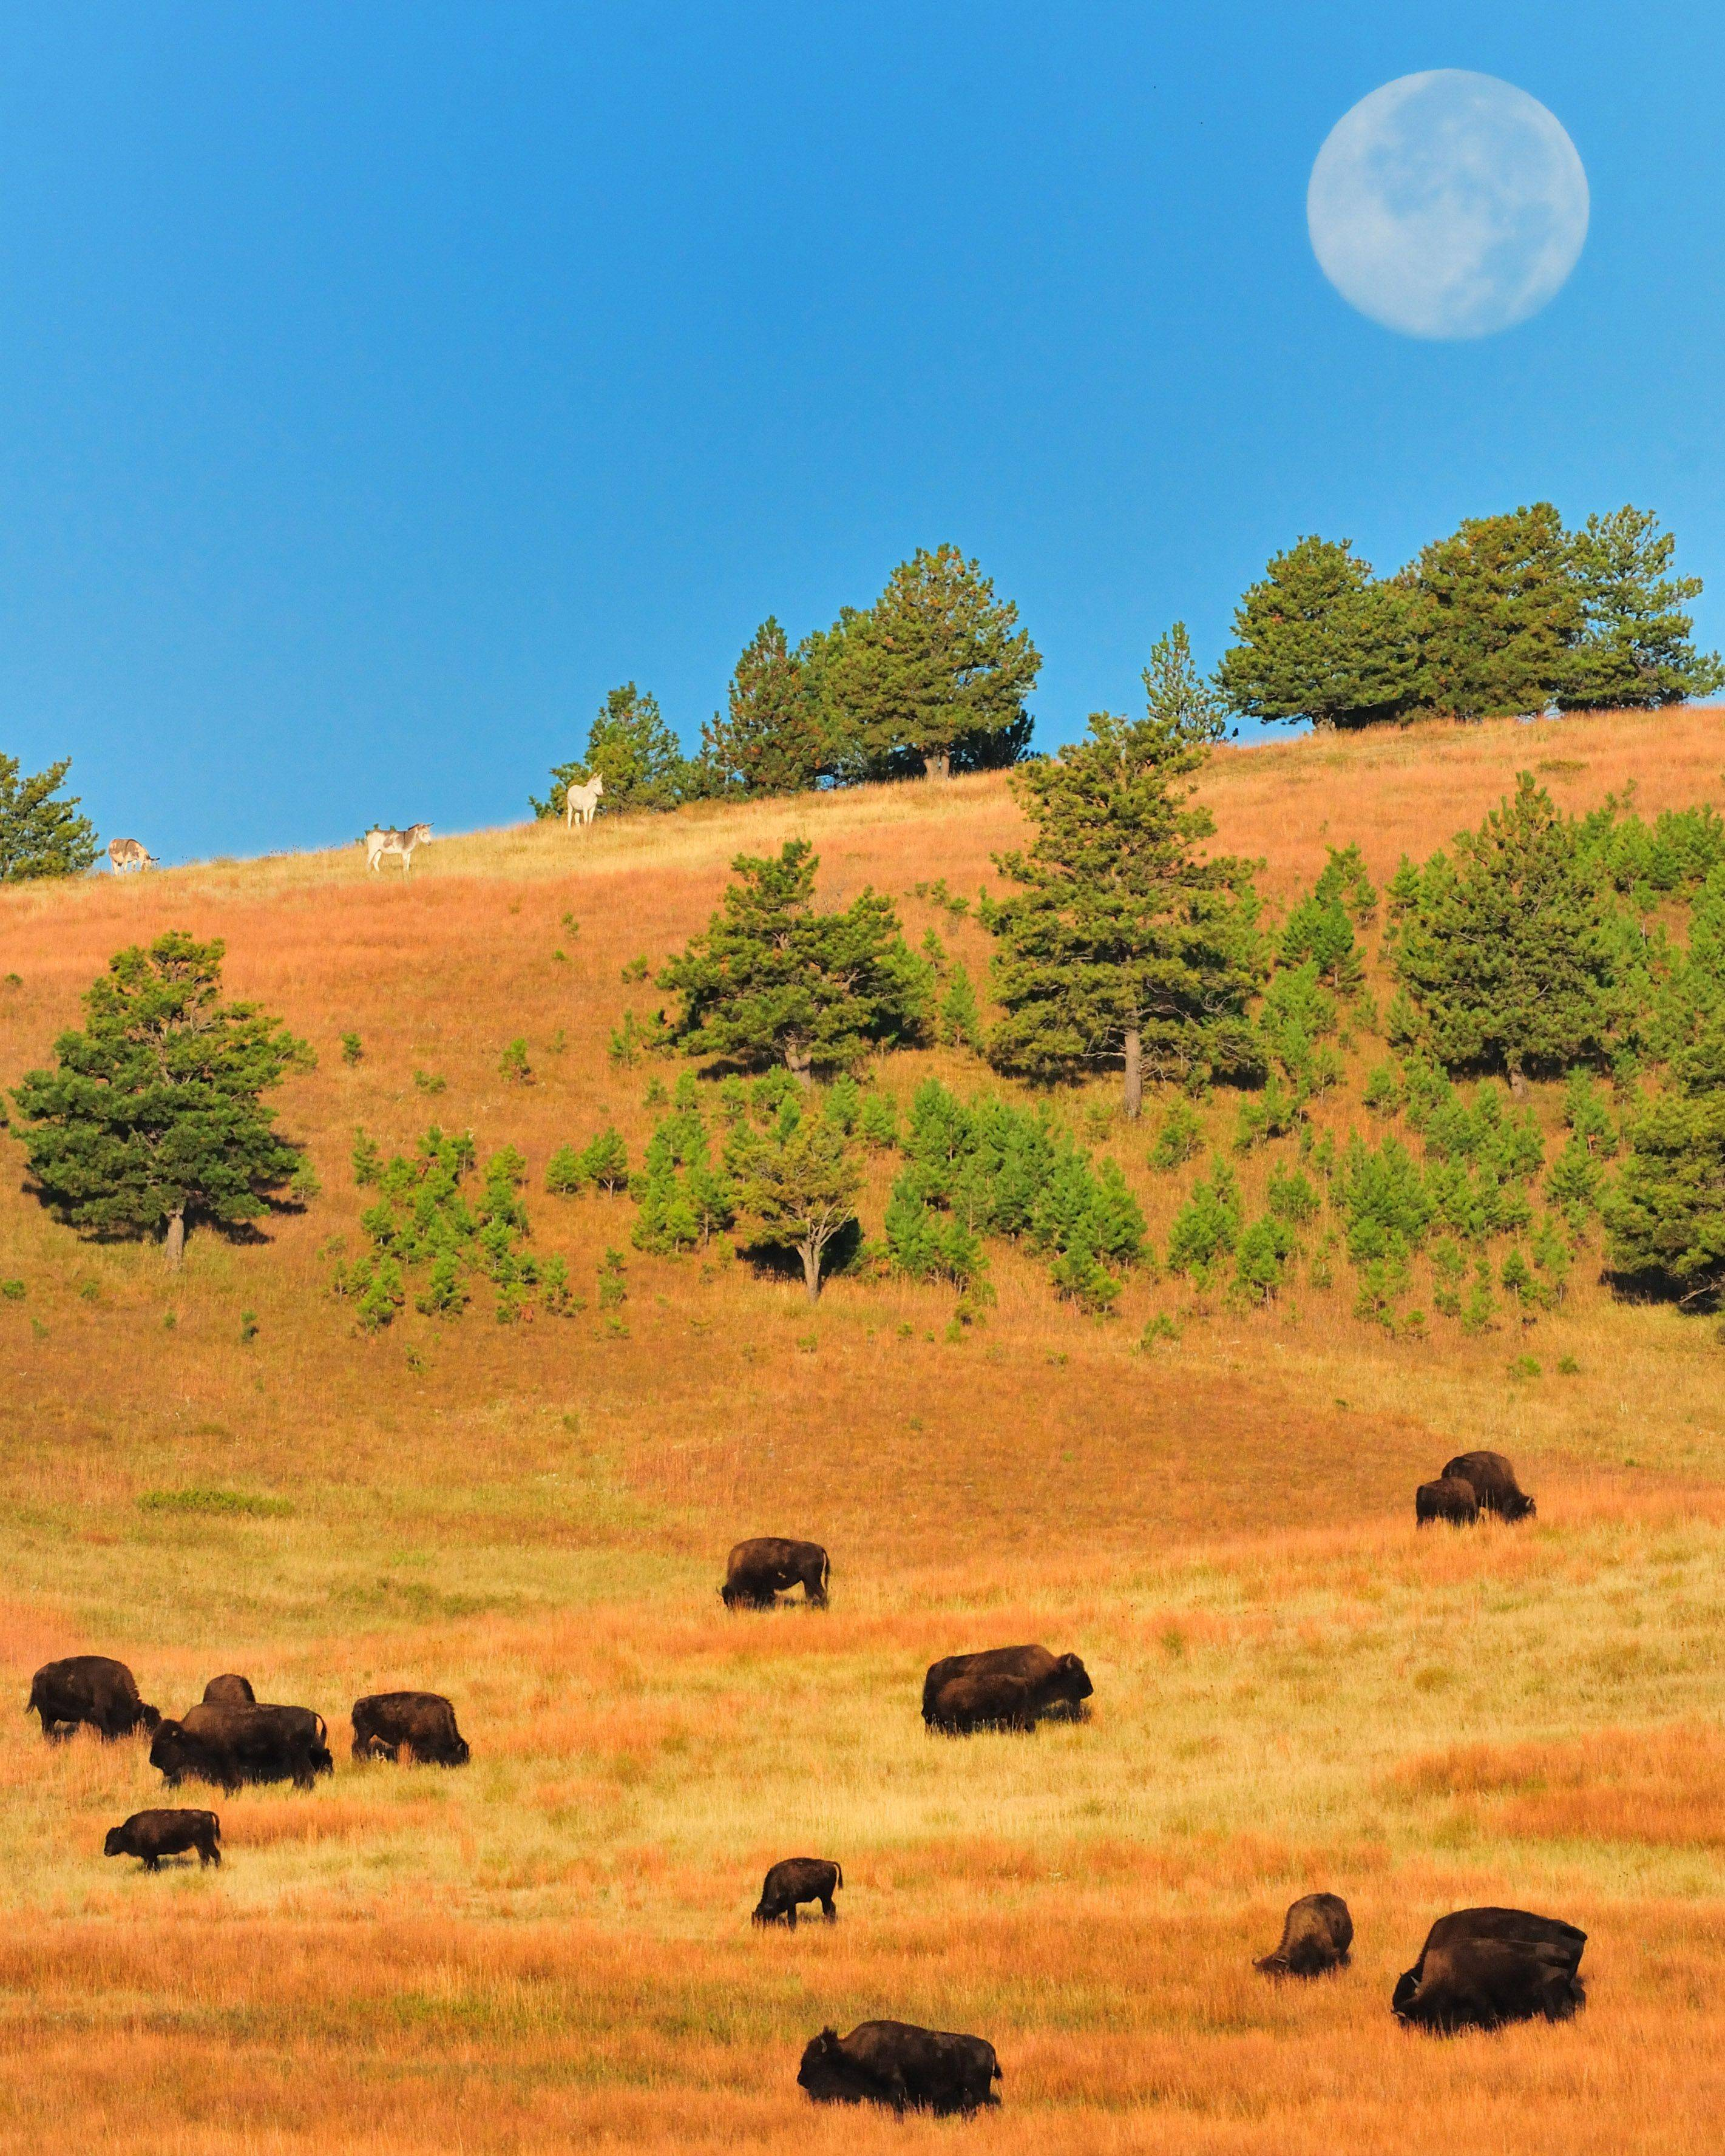 The full moon sets over a herd of bison in Custer State Park in South Dakota in September as three wild donkeys graze on the hillside.